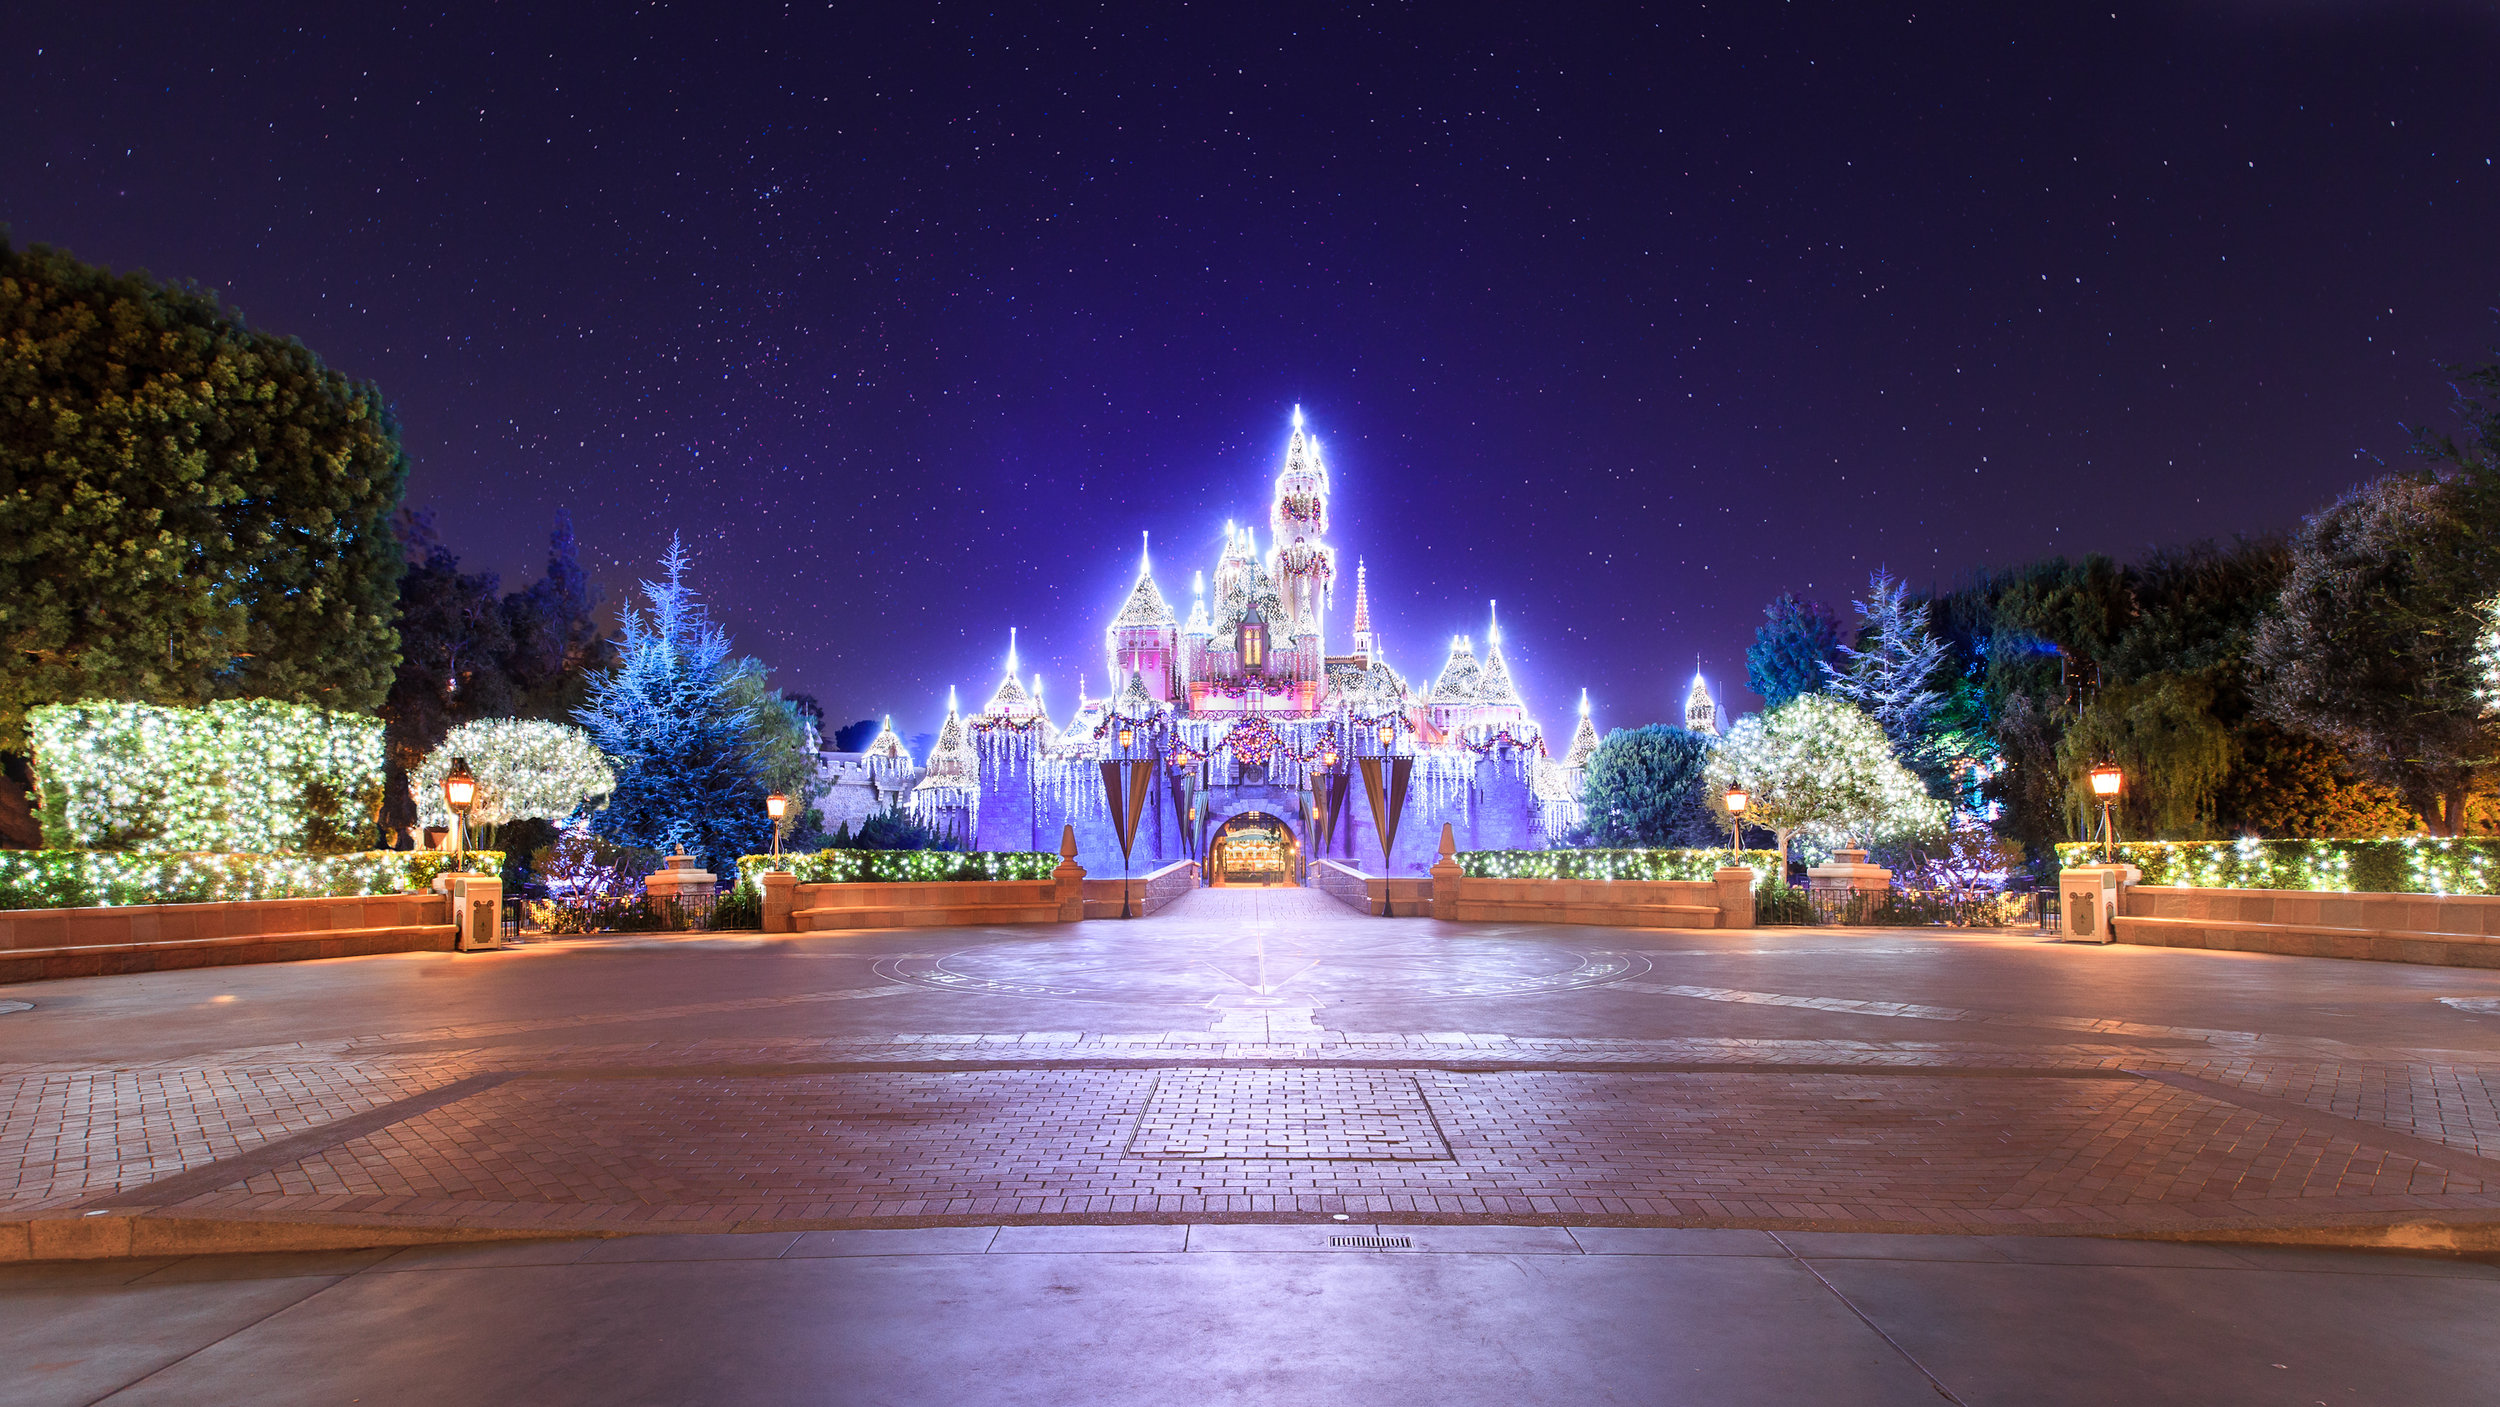 sleeping-beauty-castle-holidays-121112-0048_1.jpg